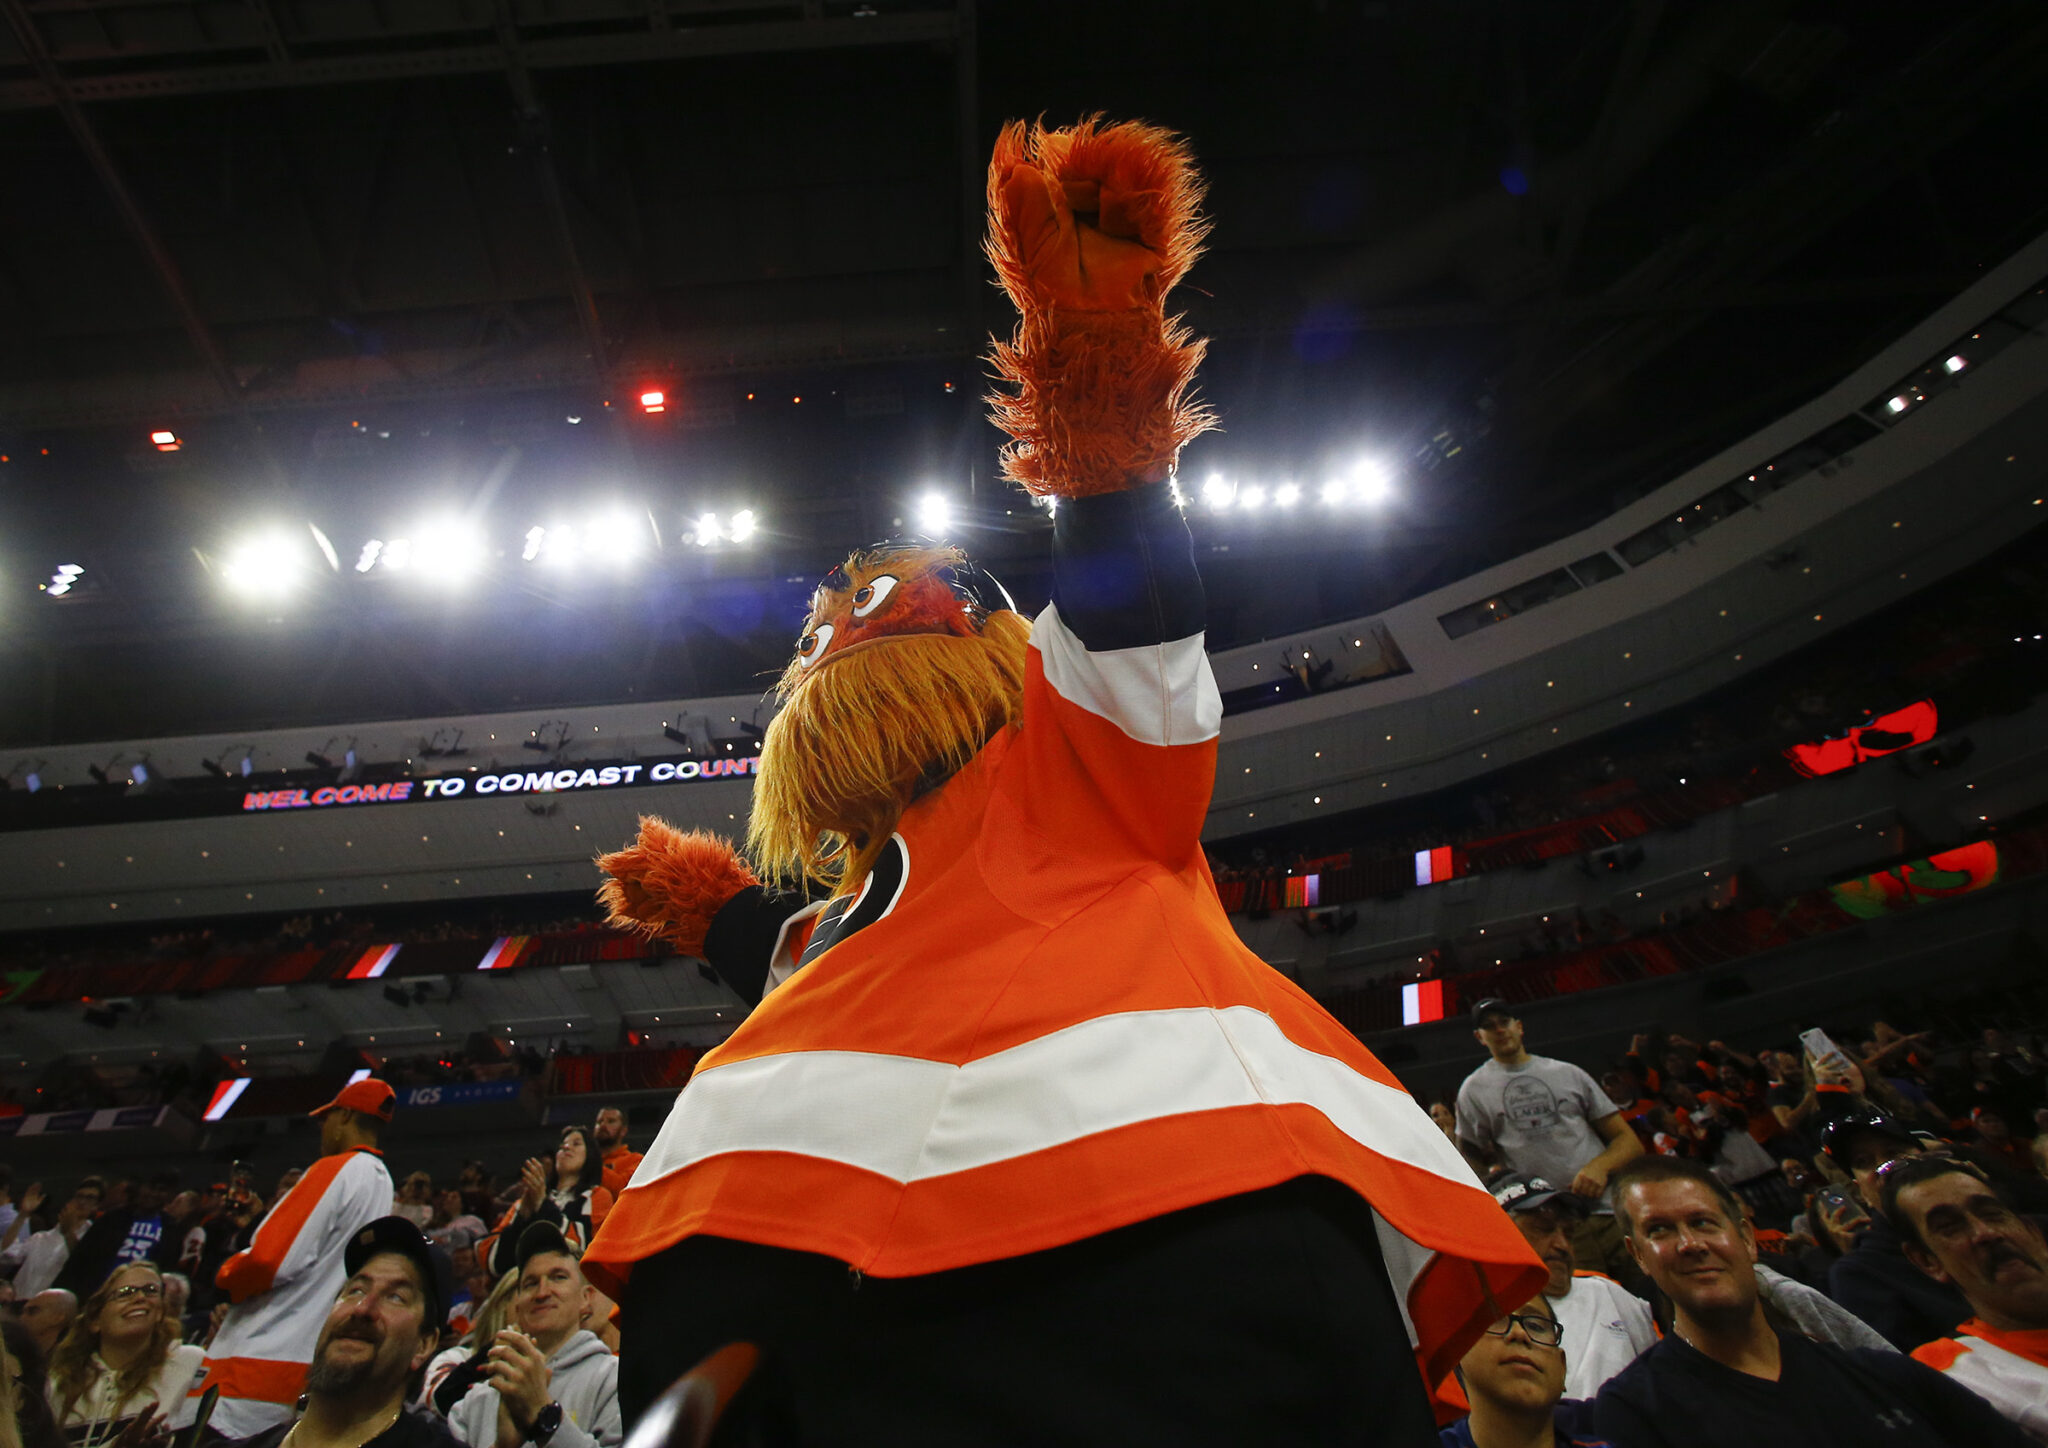 Flyers mascot Gritty with fans during a Flyers preseason game against the New York Rangers on Saturday, September 21, 2019 in Philadelphia.